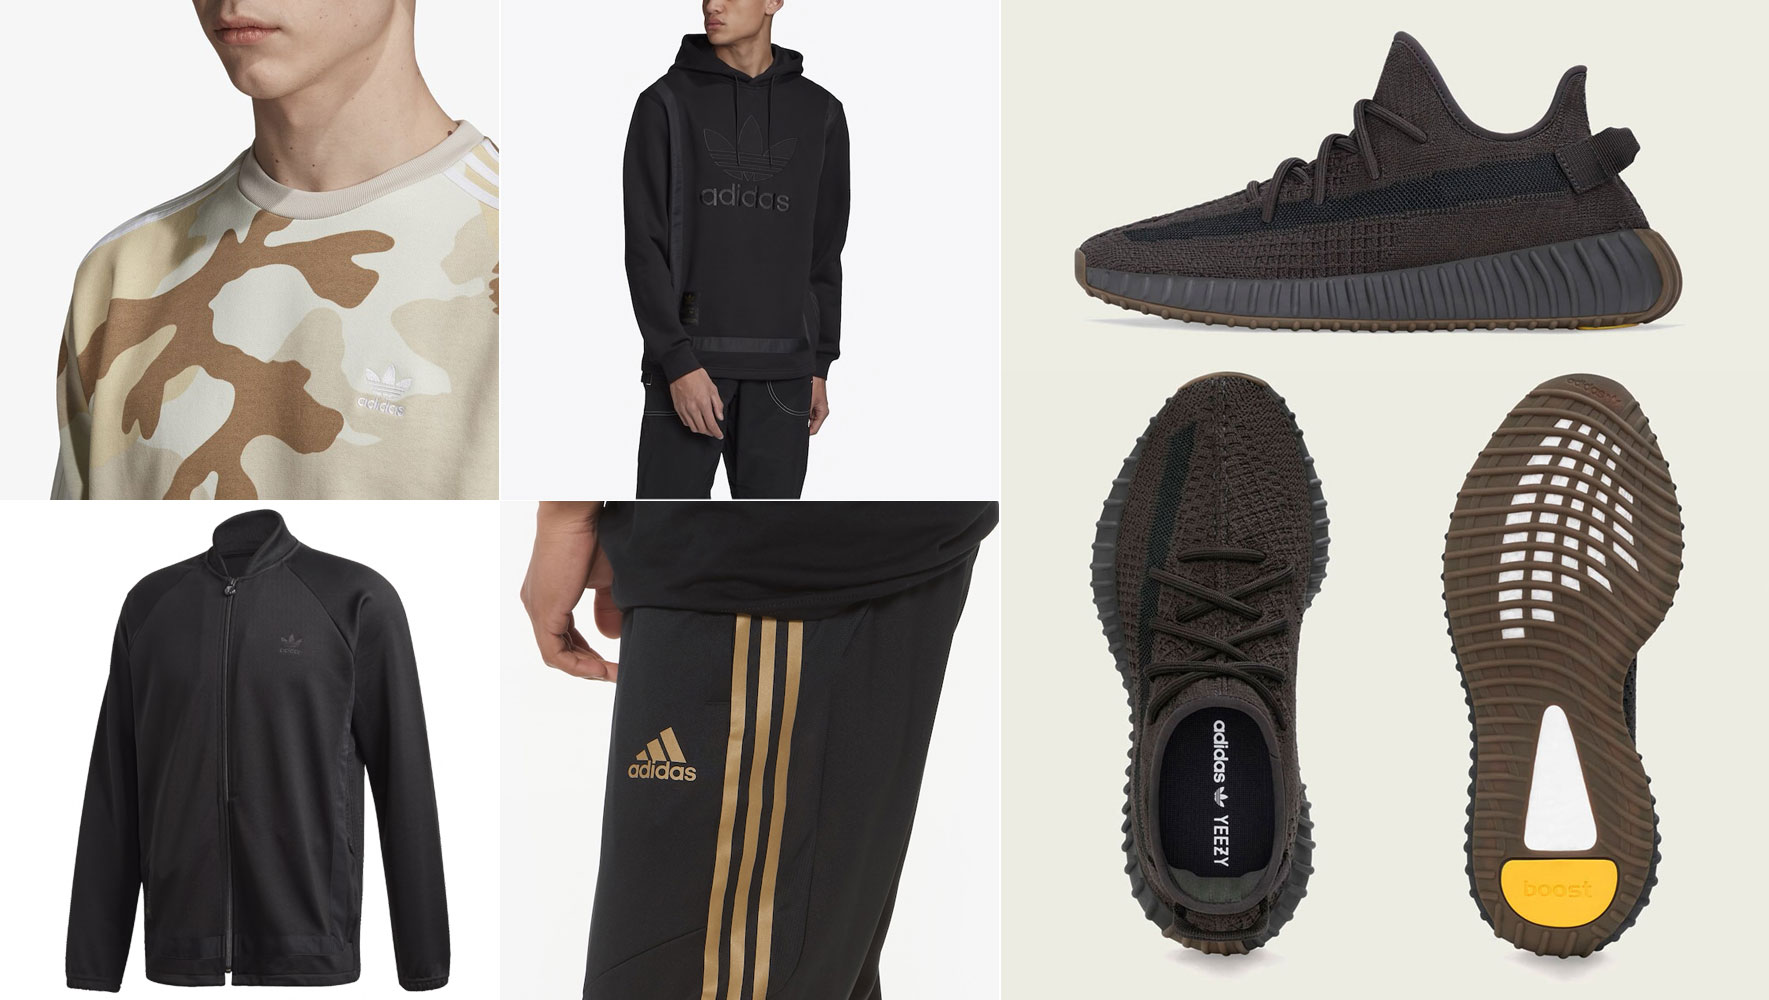 yeezy-boost-350-v2-cinder-clothing-outfits